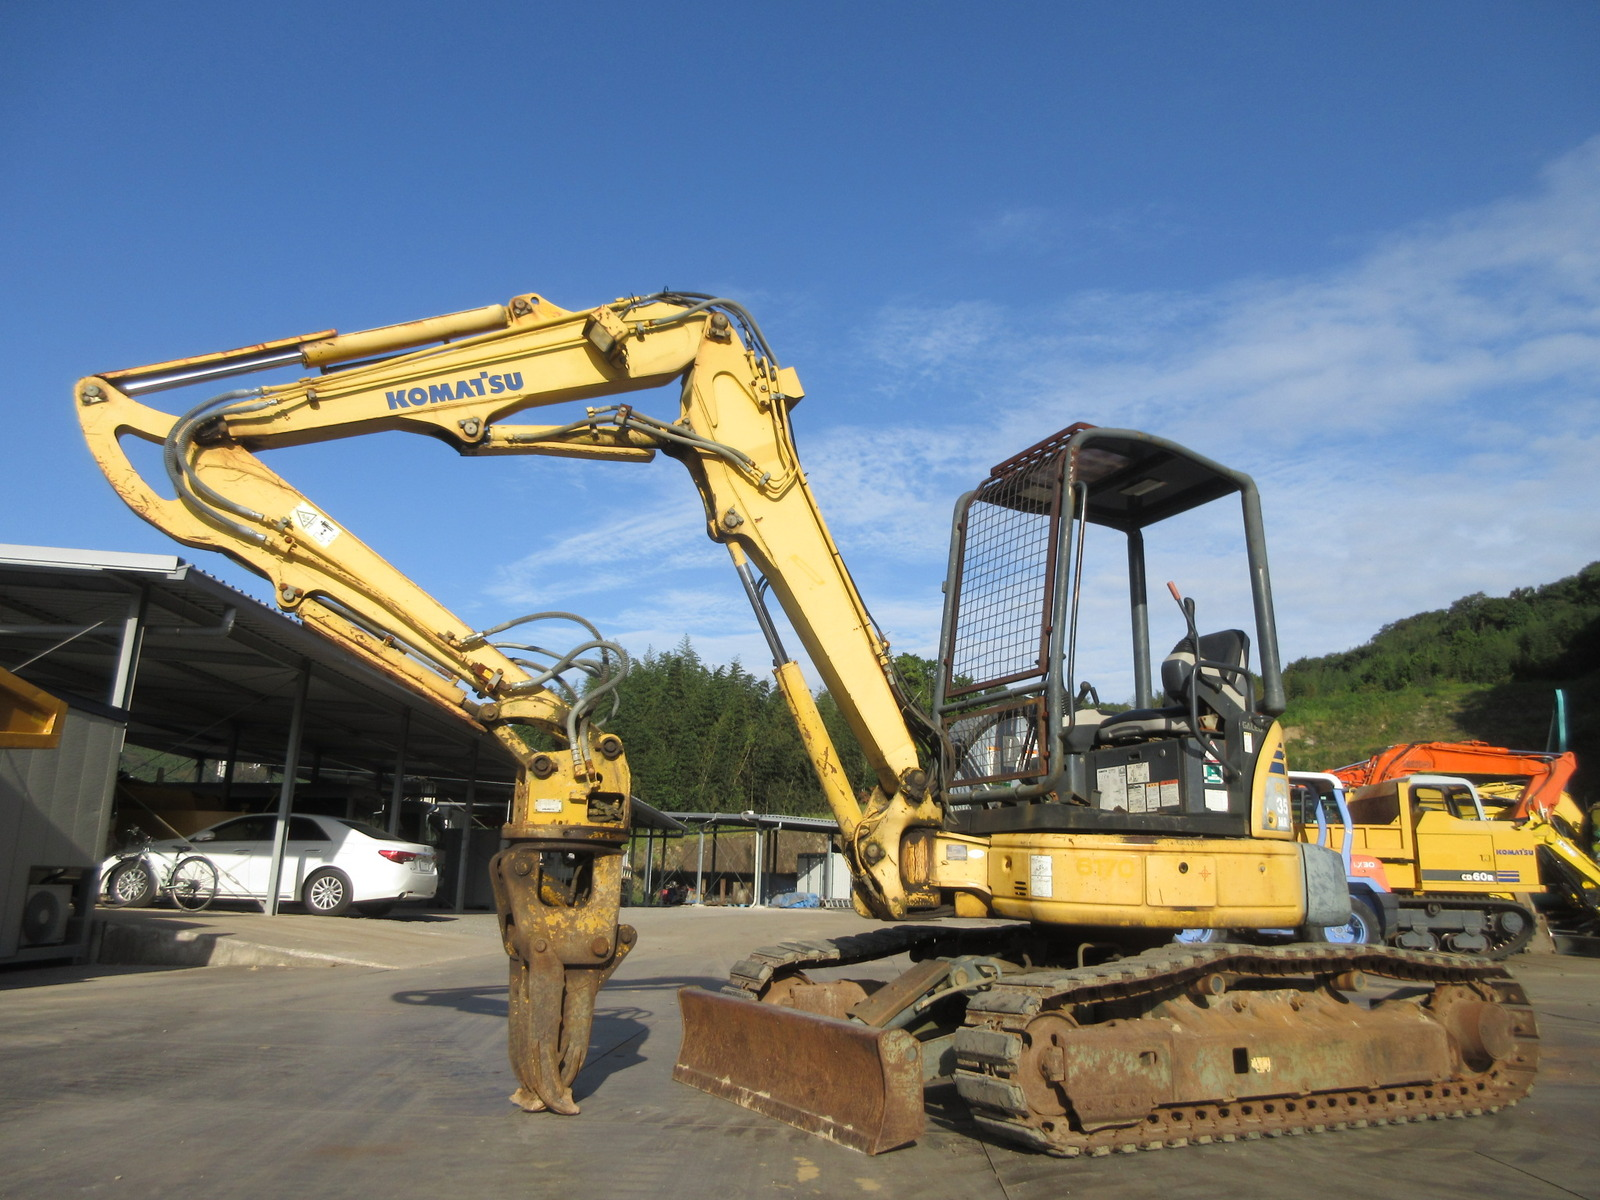 Used Construction Machine used Excavator KOMATSU PC35MR-2 Photos